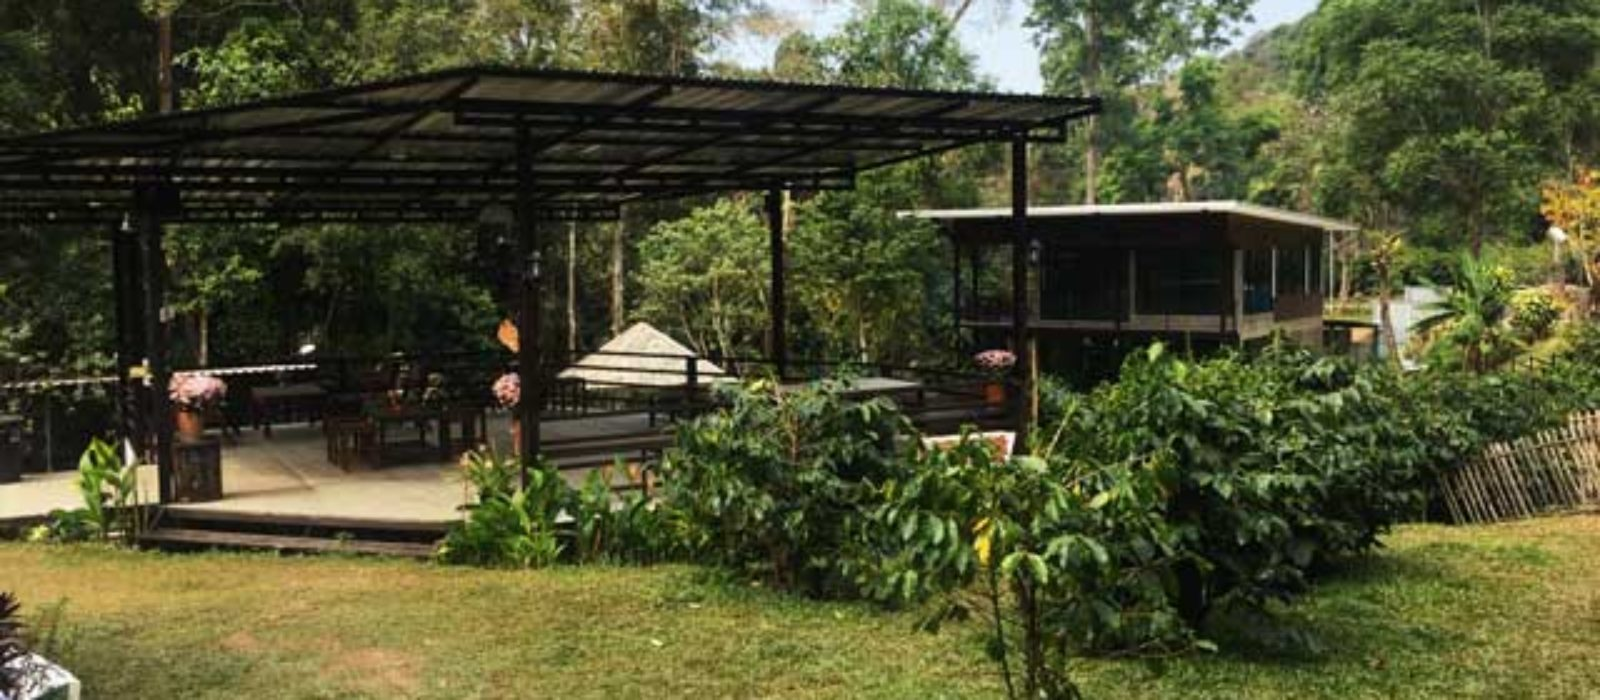 Cafeタイ夢 Thailand's Coffee Farm